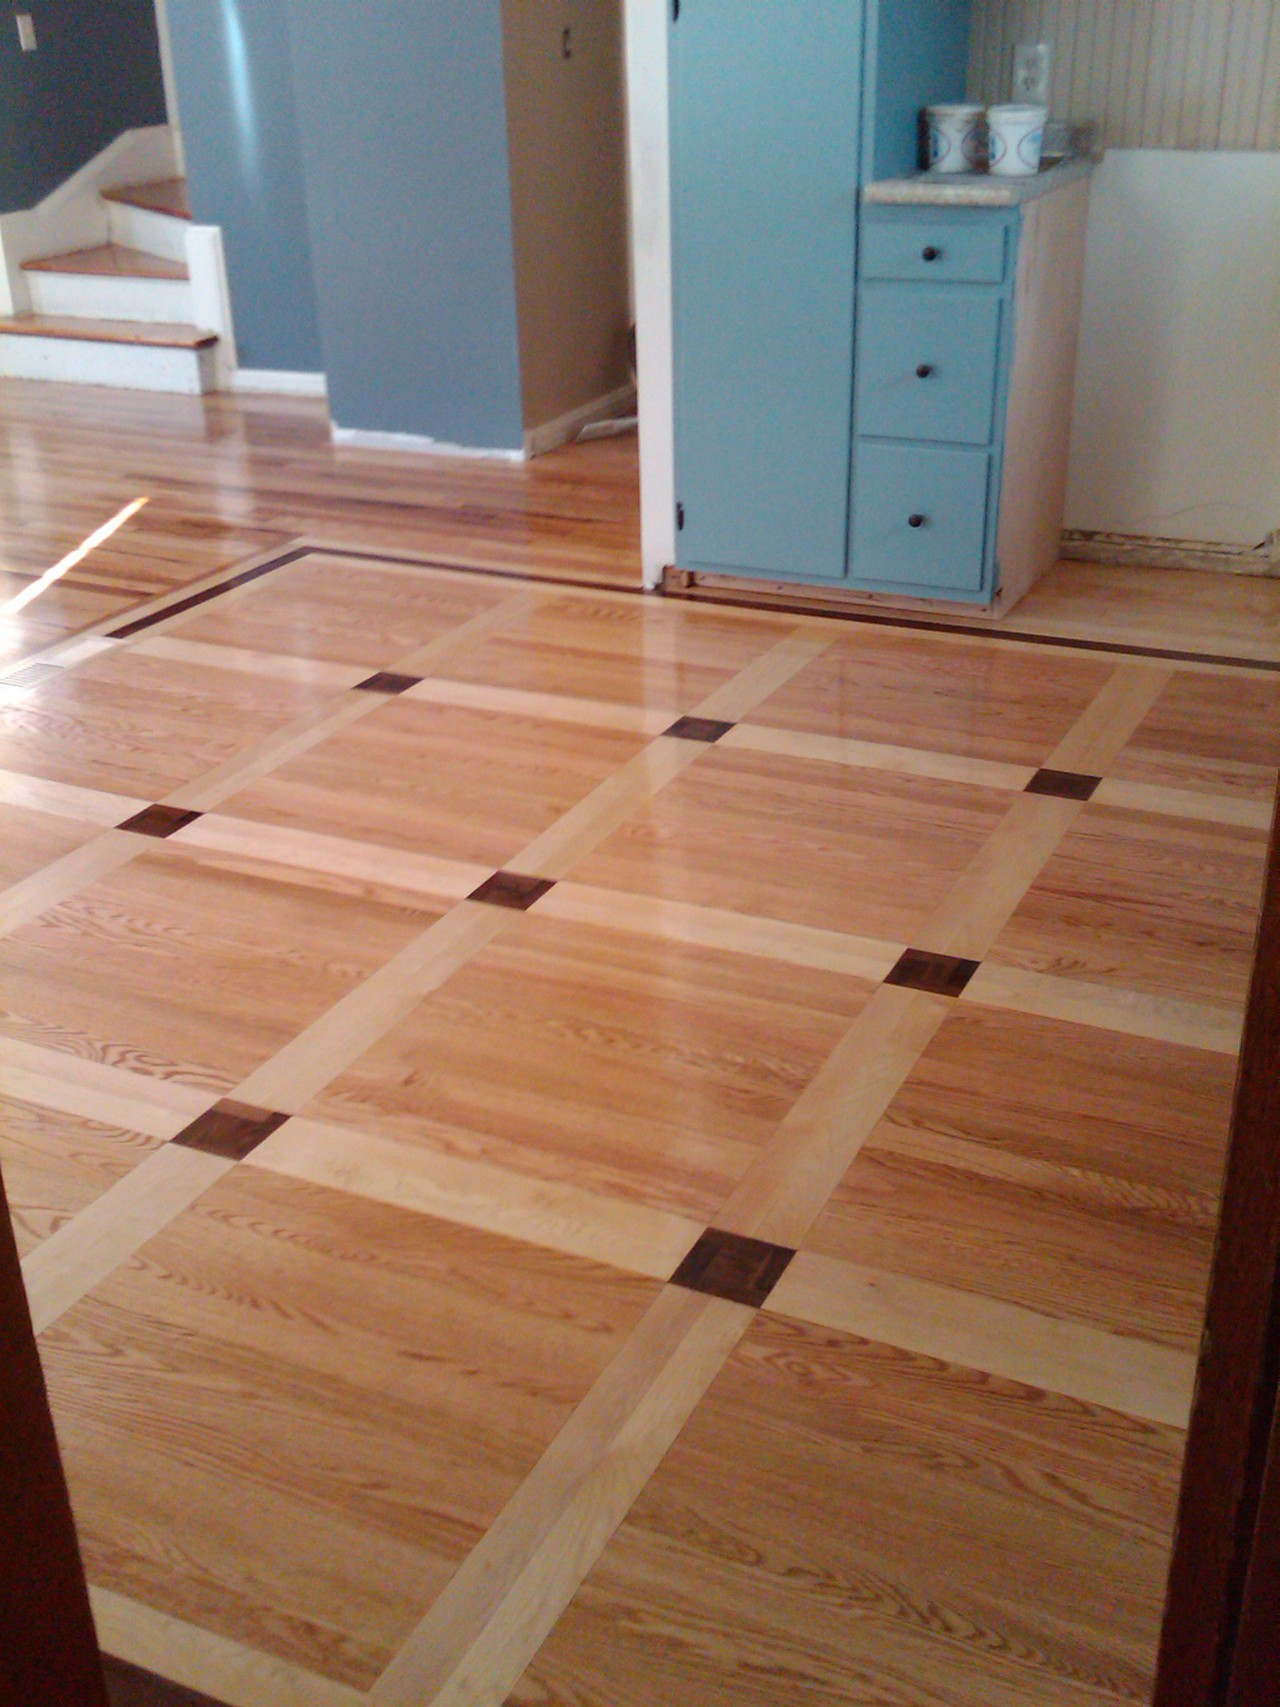 flooring gloucestershire services in by wooden floor burford steve